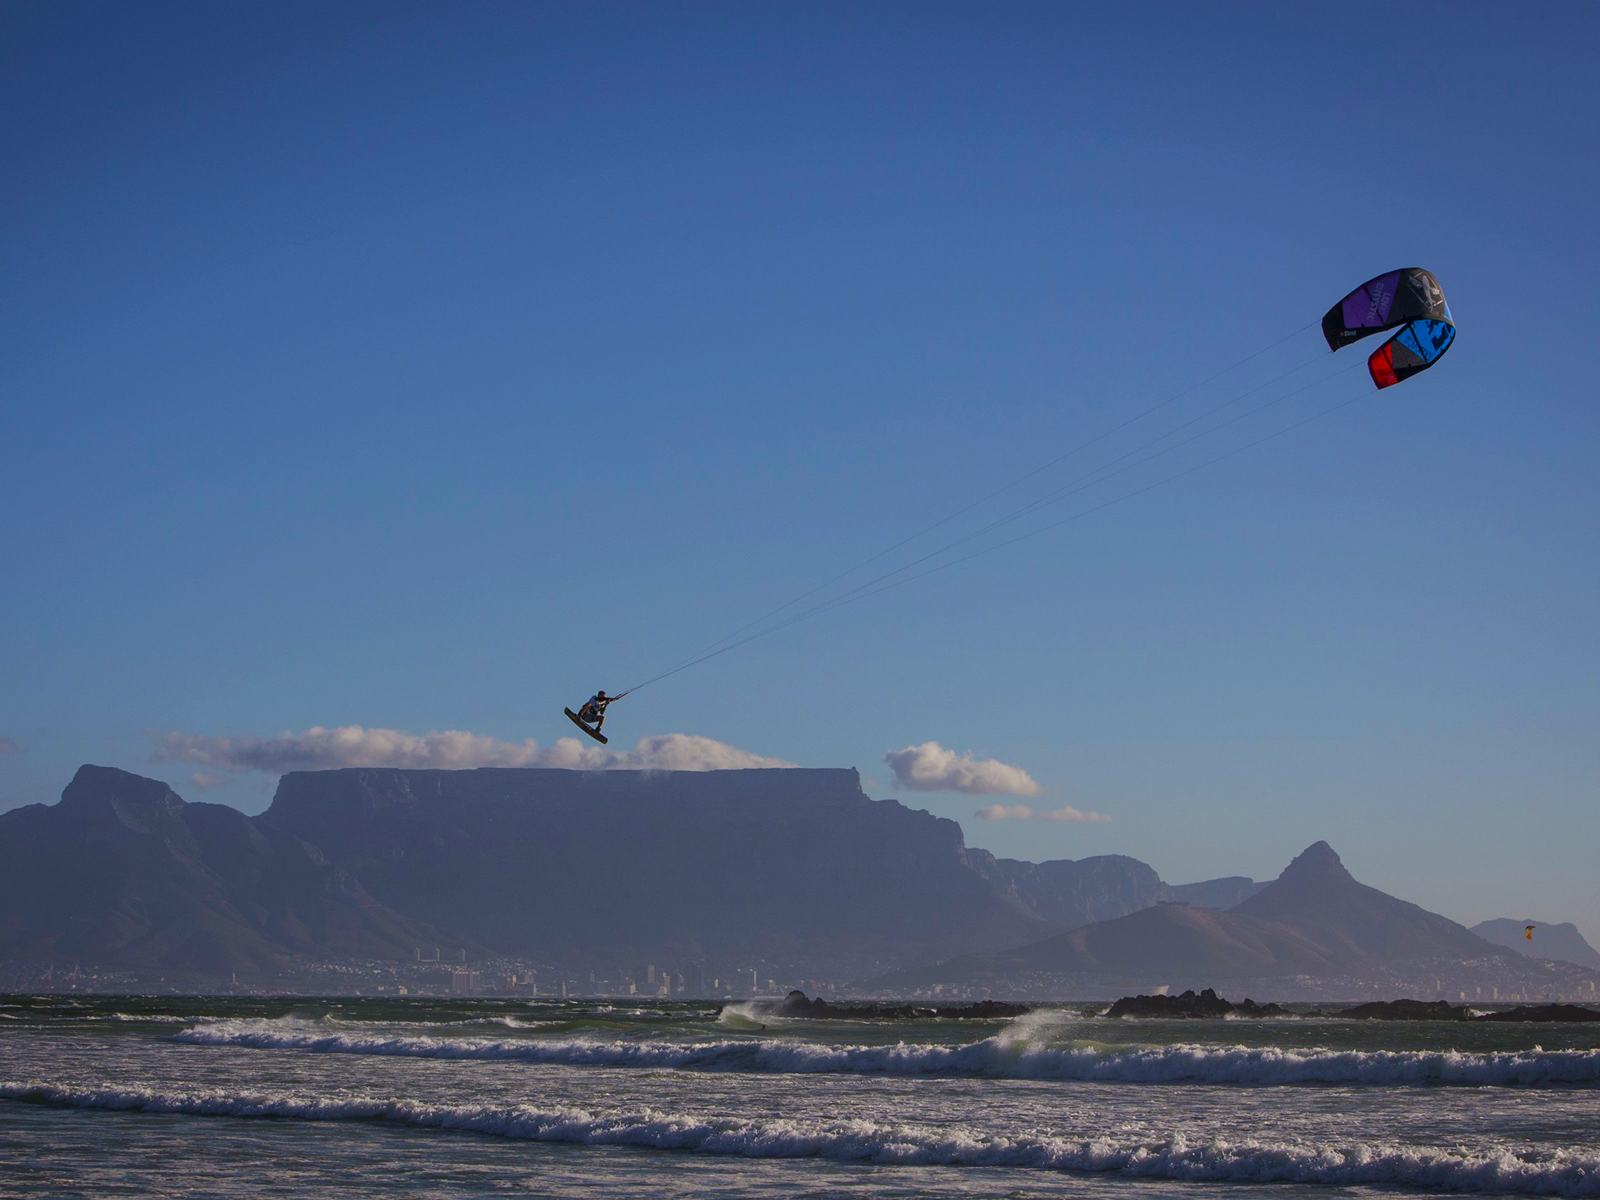 kitesurf wallpaper image - Ruben Lenten megaloop at the Red Bull King of the Air on the Best Extract kite - flying above table mountain    - in resolution: Standard 4:3 1600 X 1200